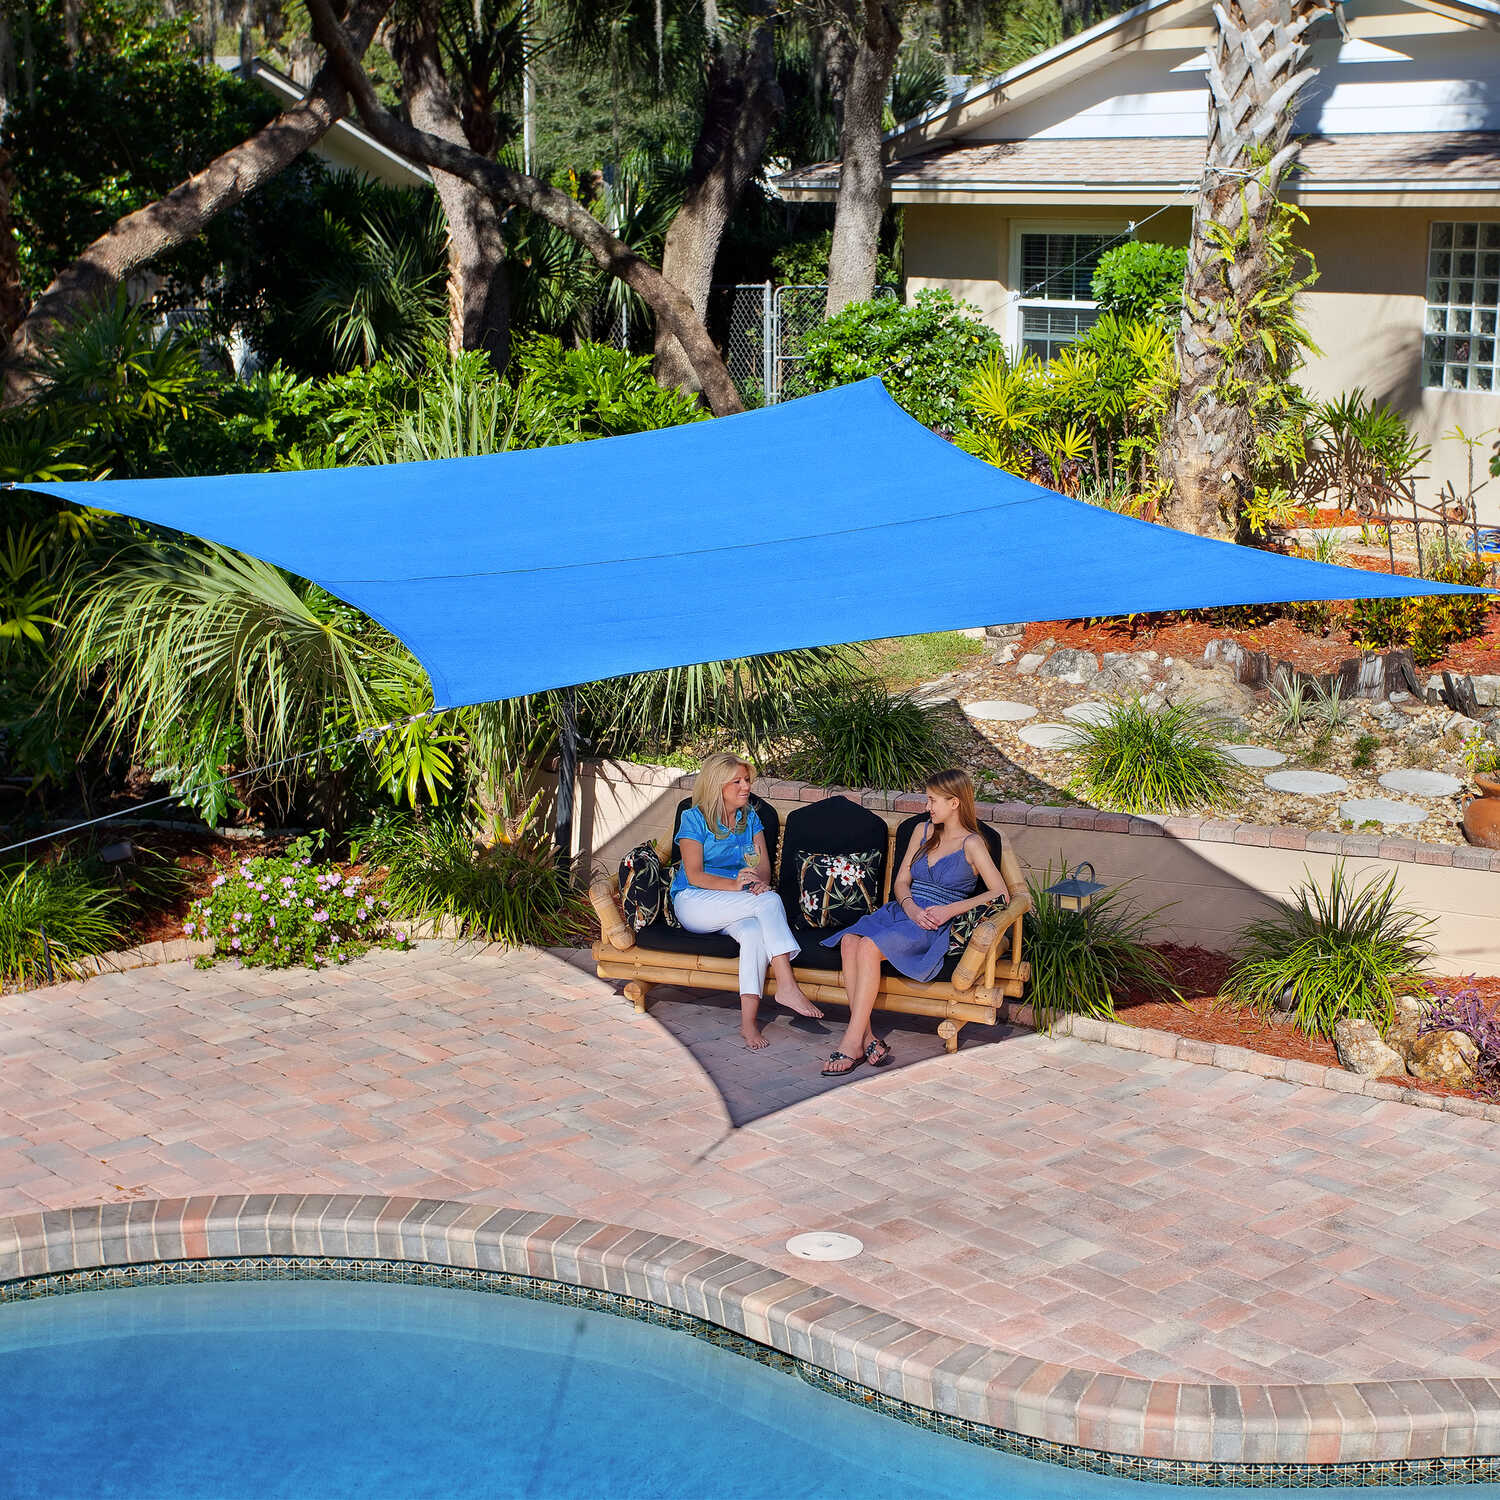 Coolaroo  Fabric  Square Shade Sail Canopy  12 ft. L x 12 ft. W x 12 ft. W x 12 ft. L